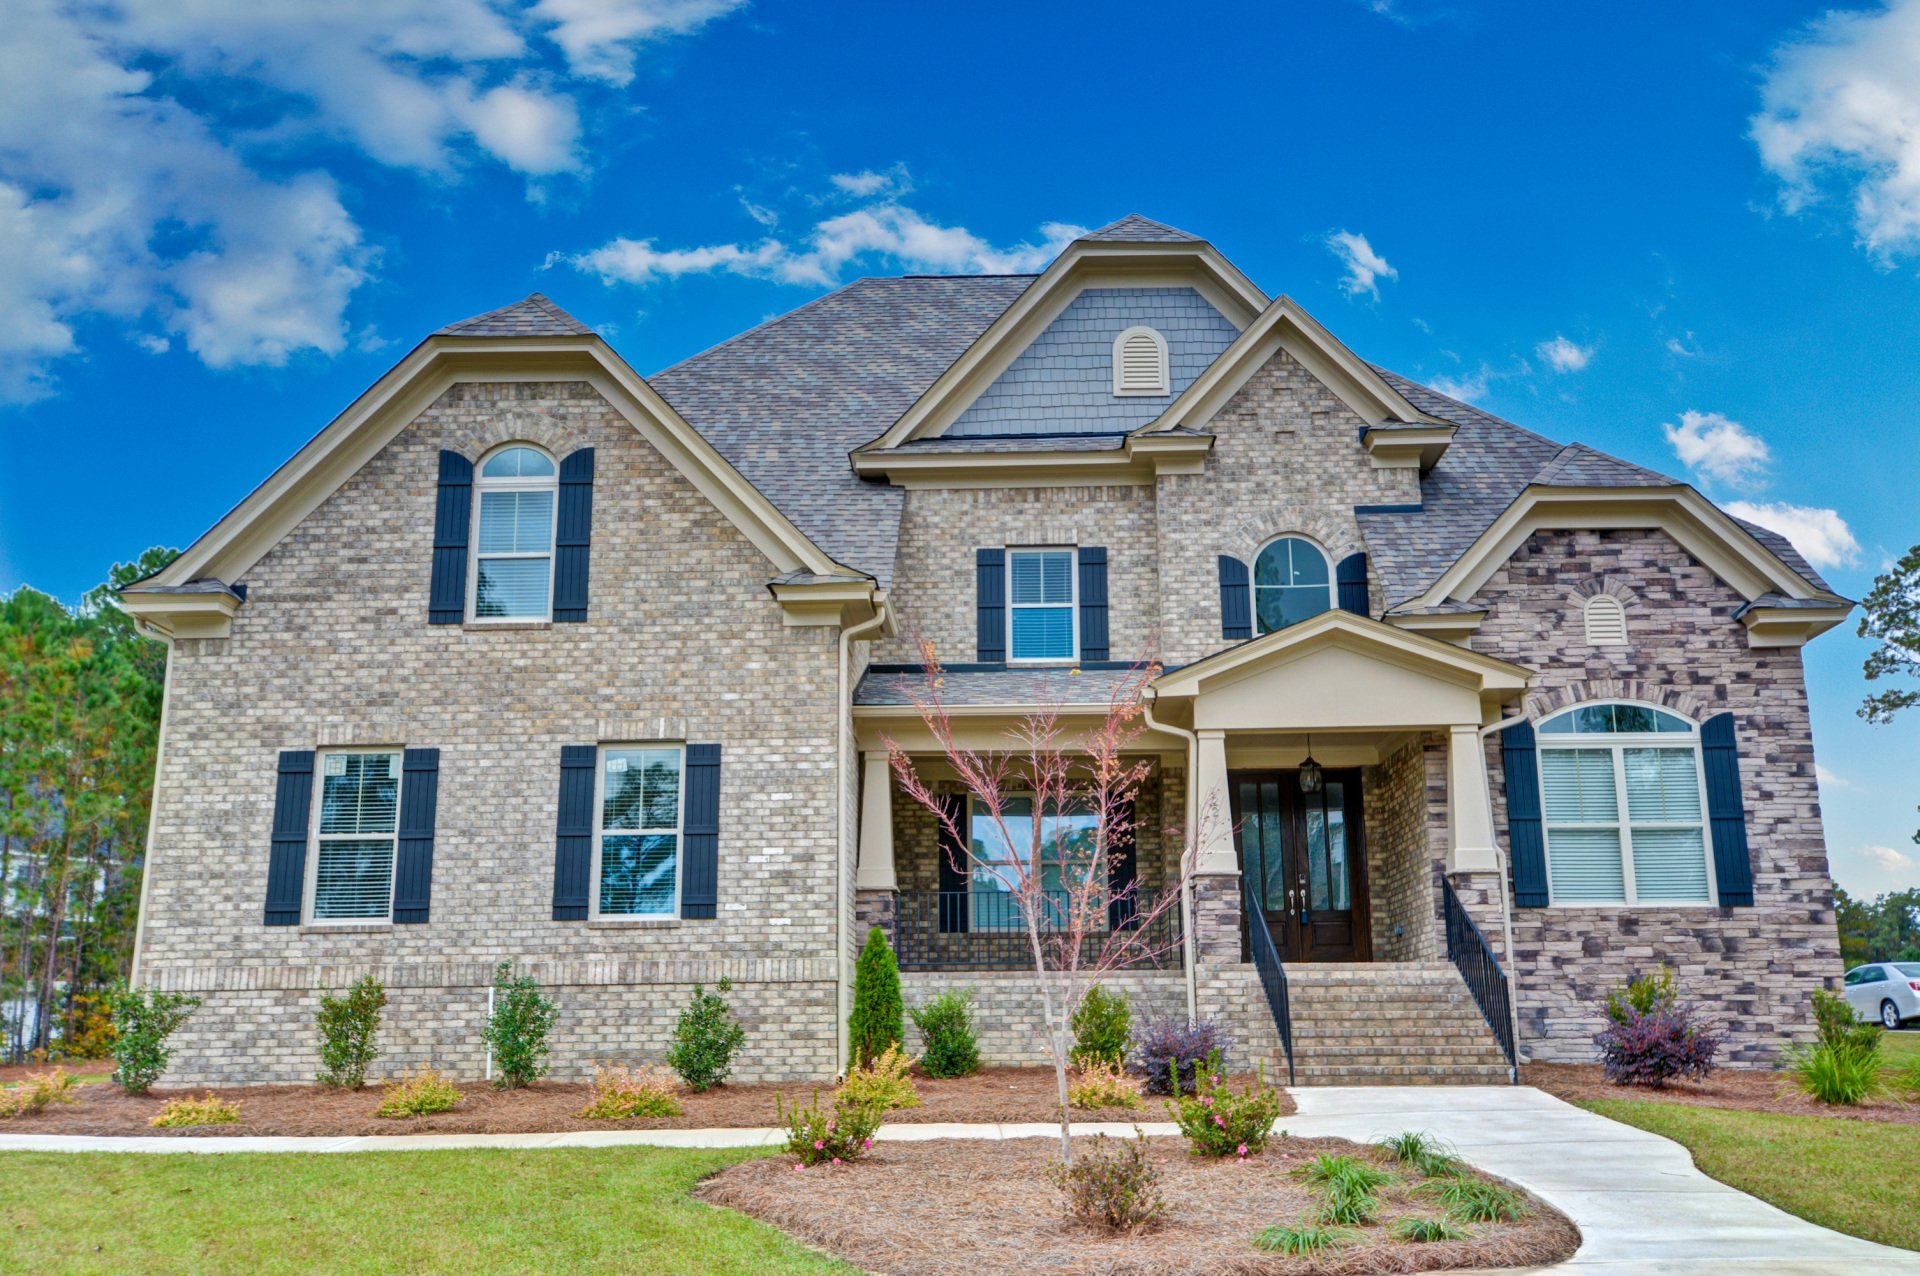 Home Builder Executive Construction Homes In Columbia Sc